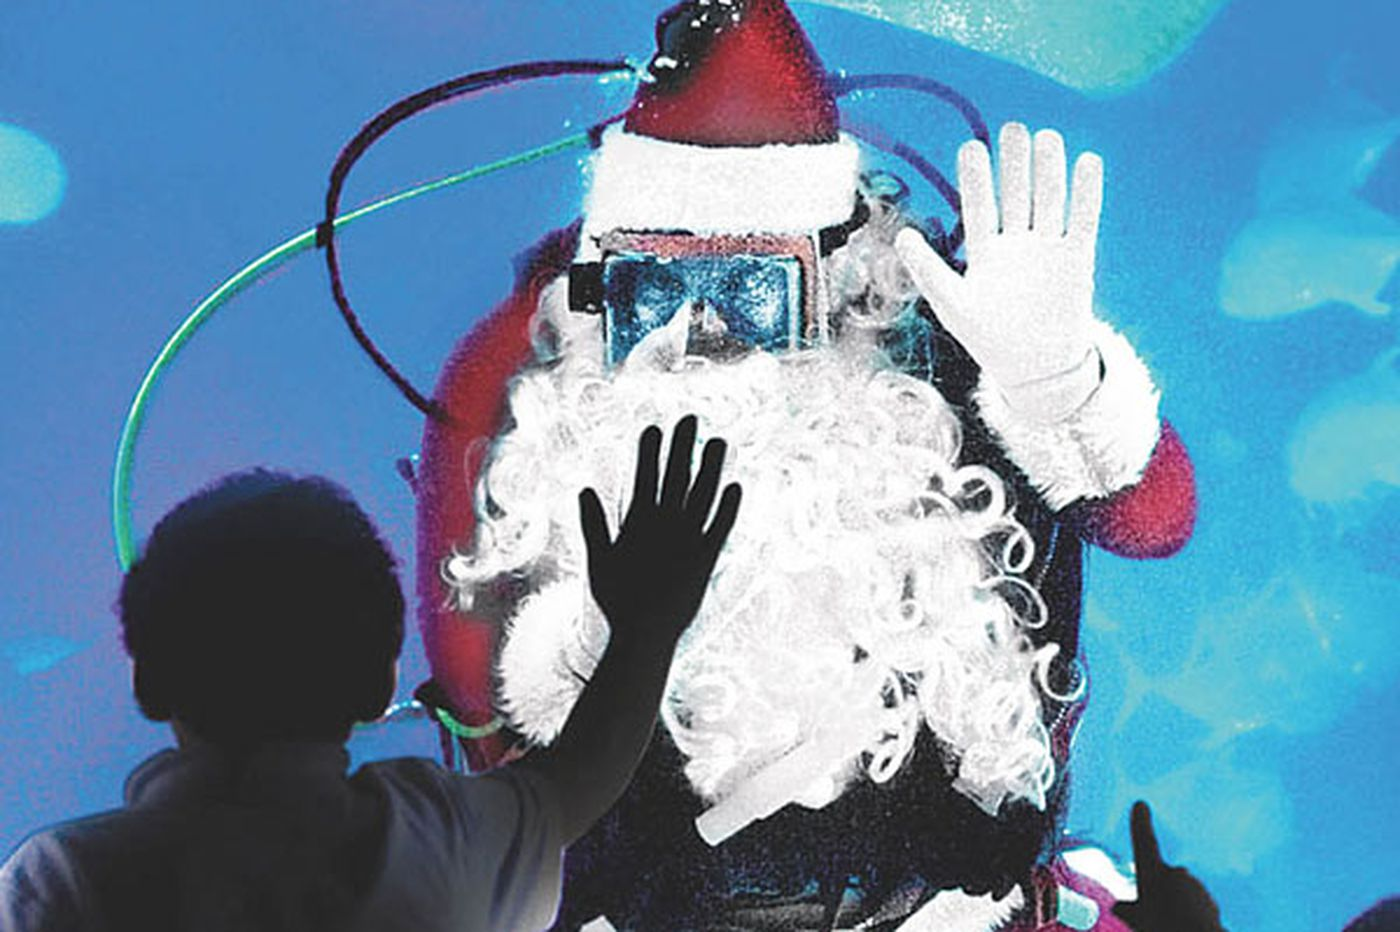 'Tis the season for Scuba Santa at Camden's aquarium